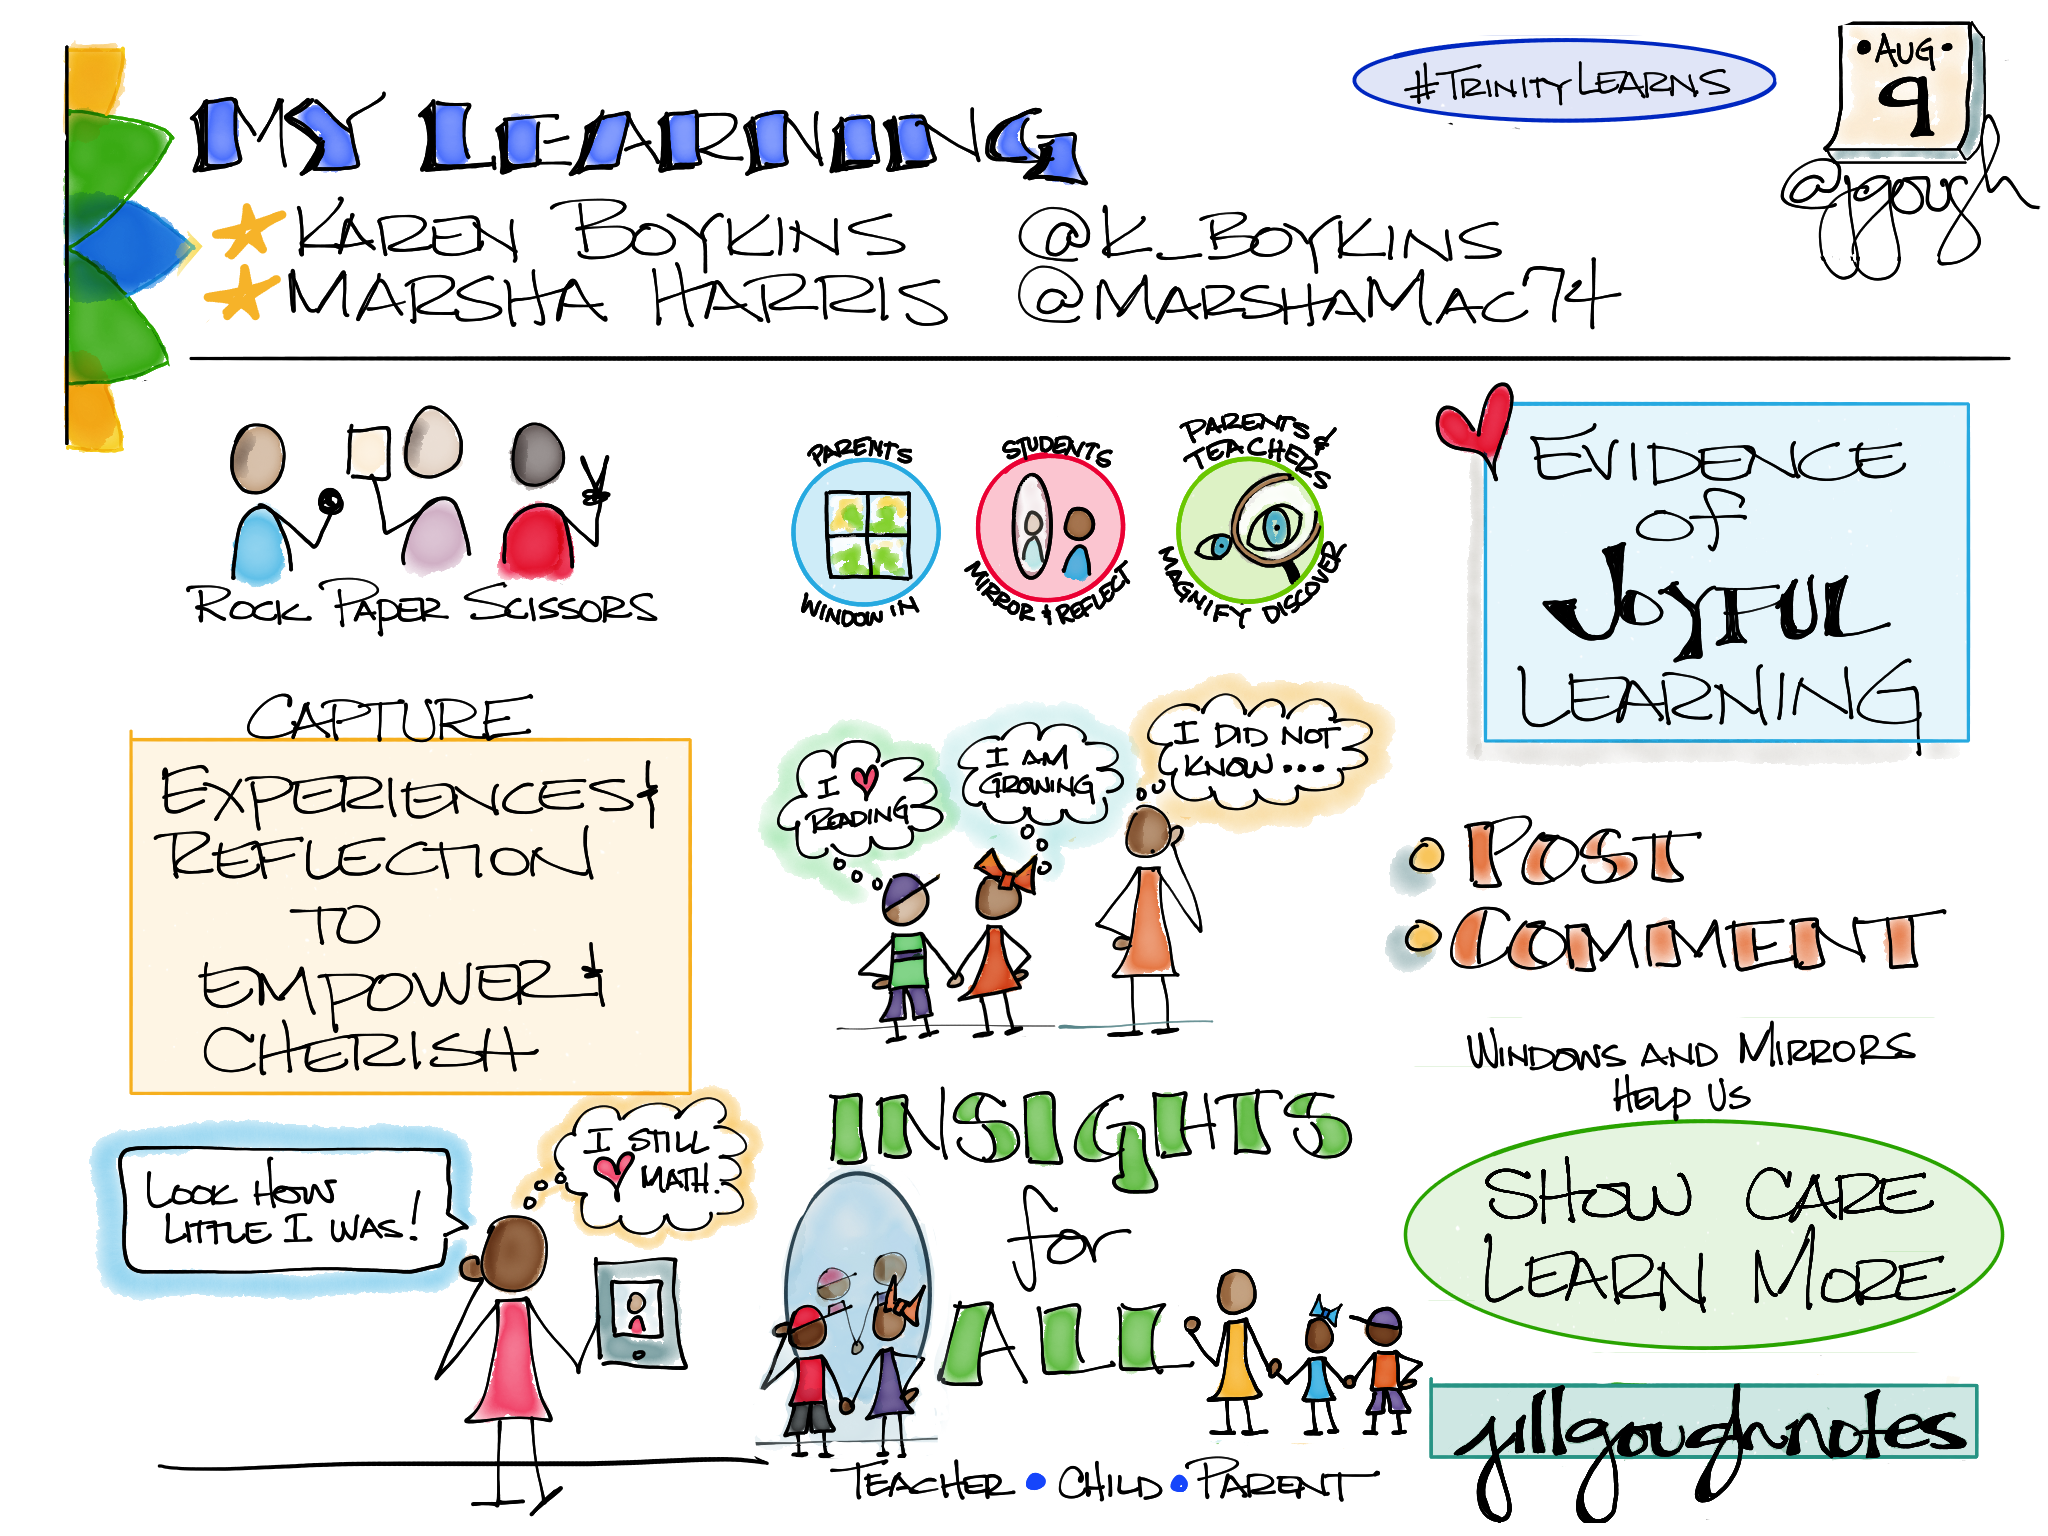 Sharing my #Sketchnotes from @K_Boykins @MarshaMac74 #TrinityLearns #MyLearning Pre-Planning session. HMW capture evidence of vigorous, joyful learning that empower learners and cherish childhood?